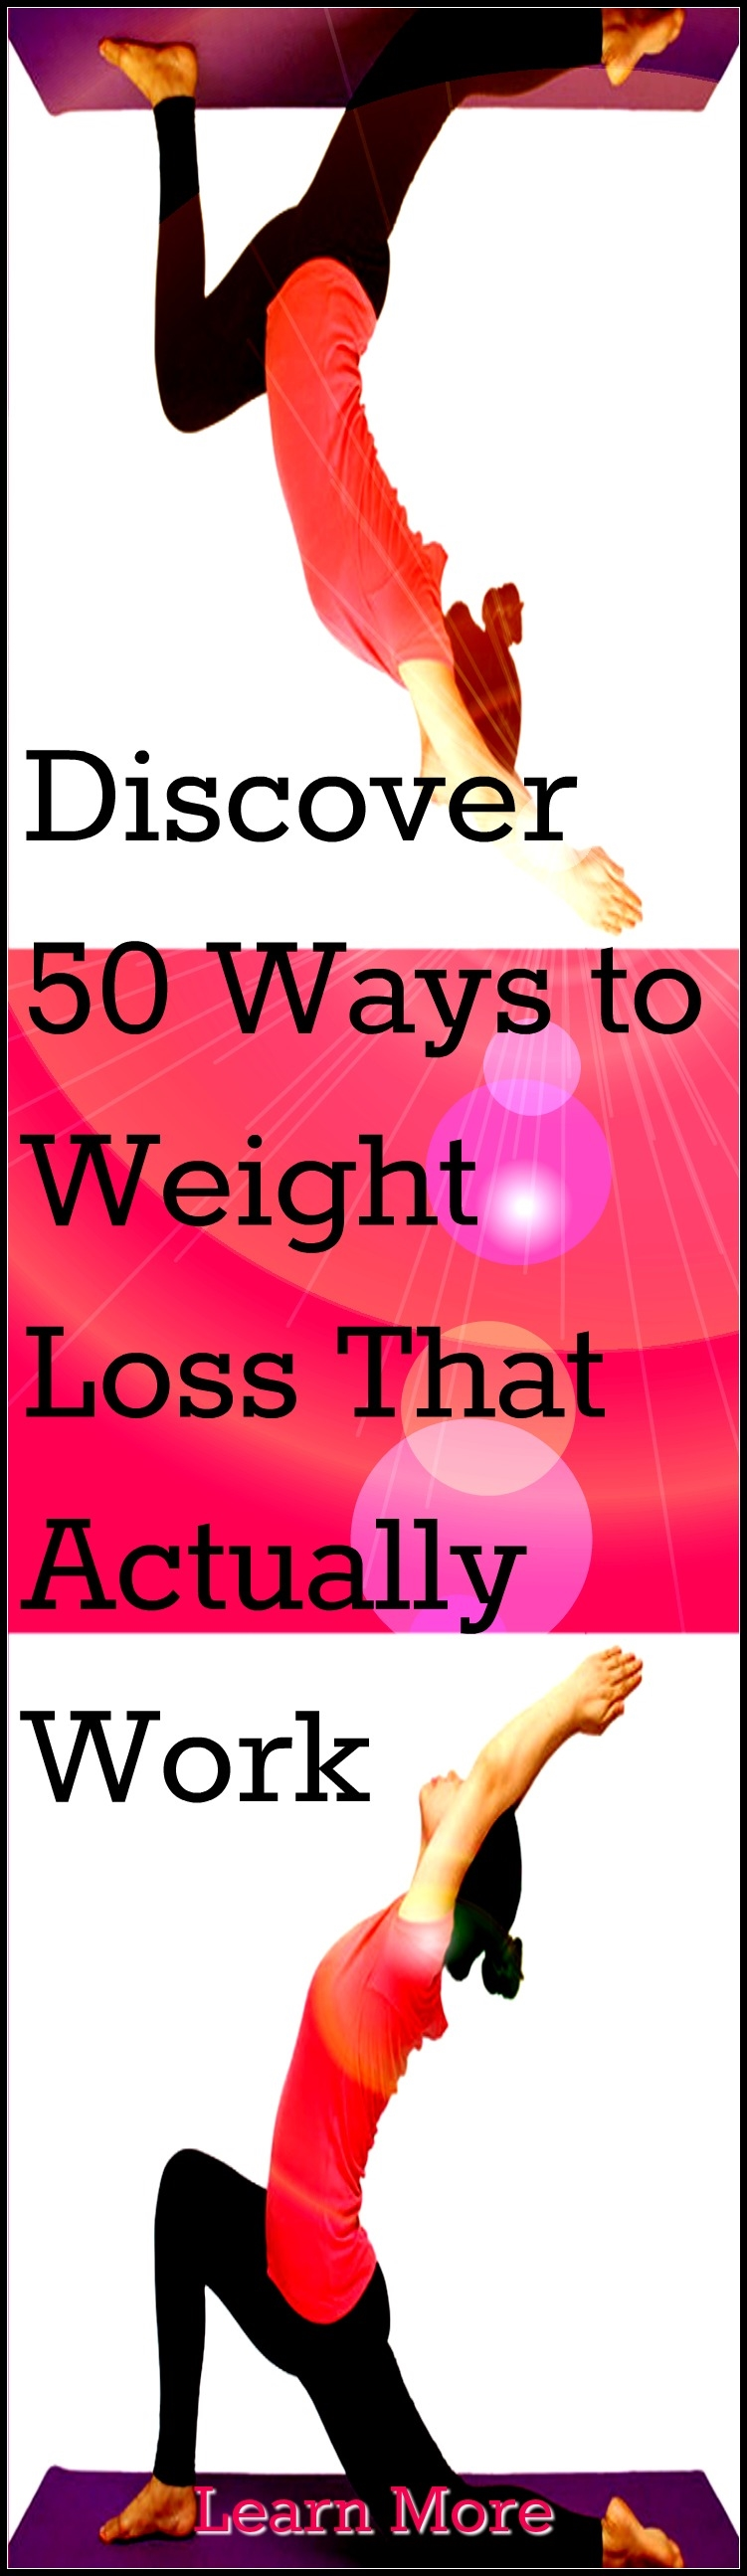 Dieting to gain muscle and lose fat photo 10